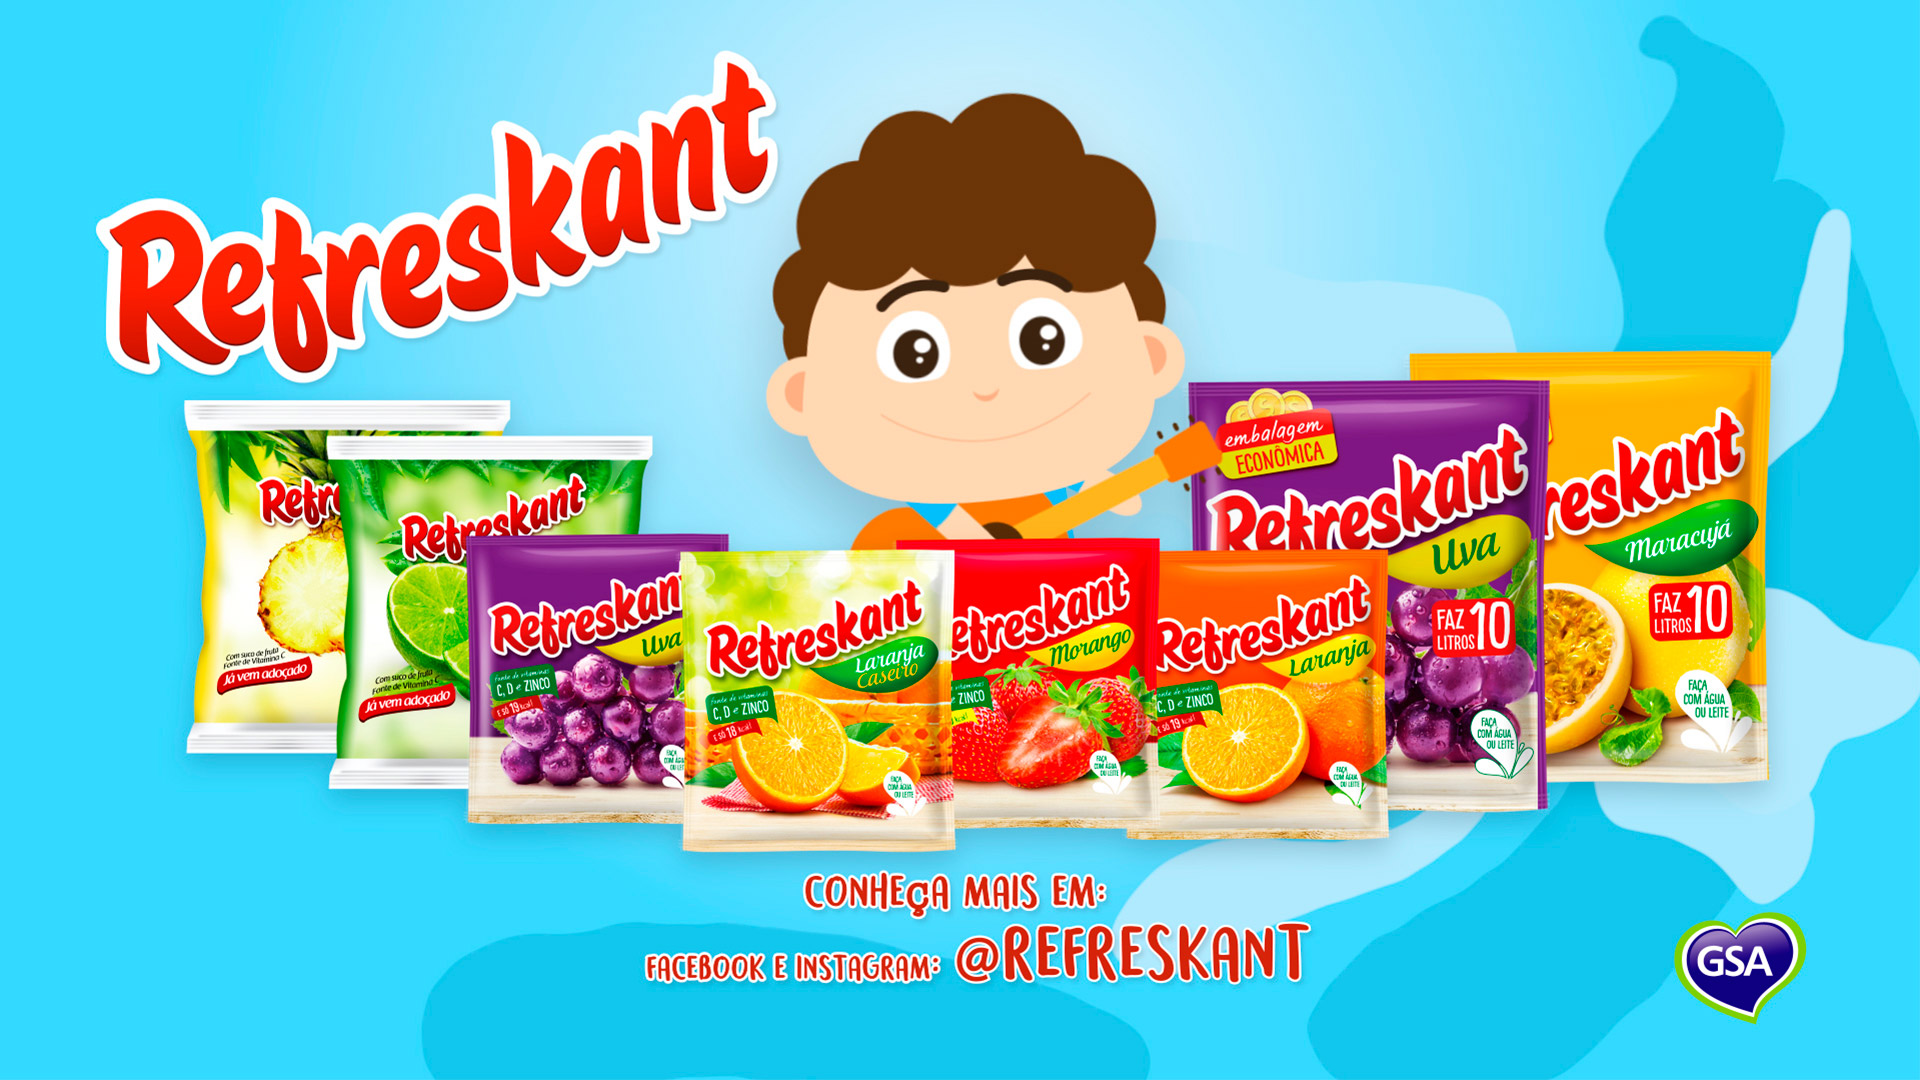 REFRESKANT flavor that happens